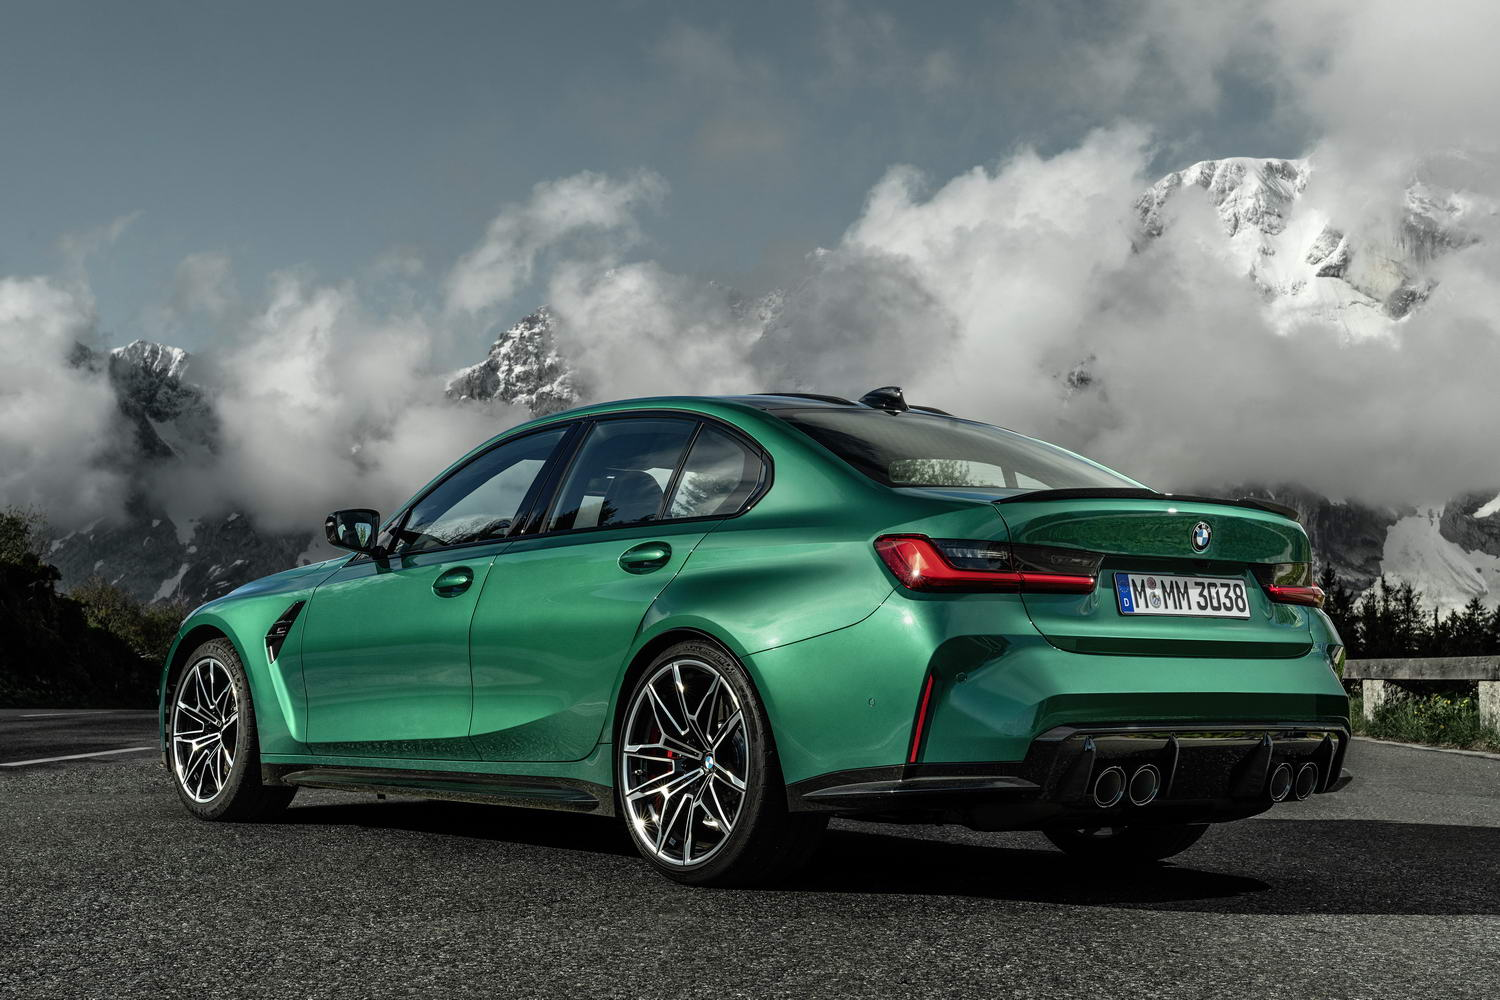 2021 bmw m3 saloon image gallery - car and motoring news